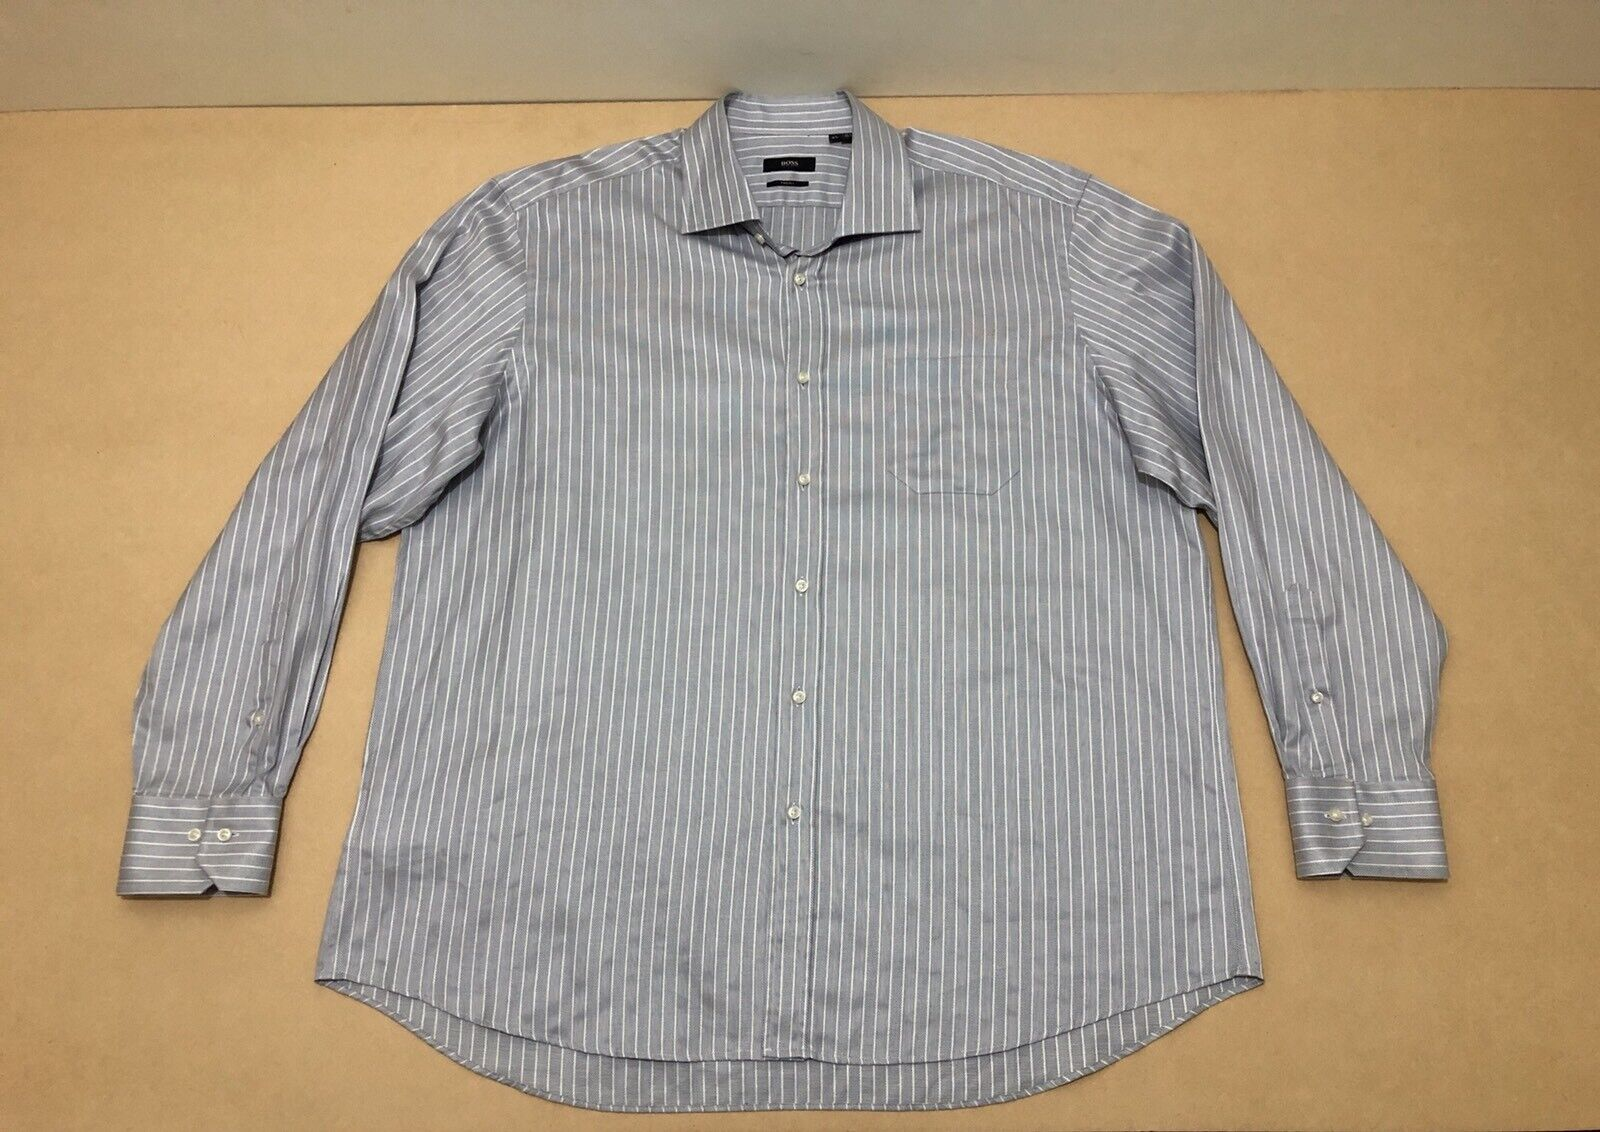 Hugo Boss Shirt Mens  Size 47 or 18.5  Great Cond Long Sleeve Polo Business